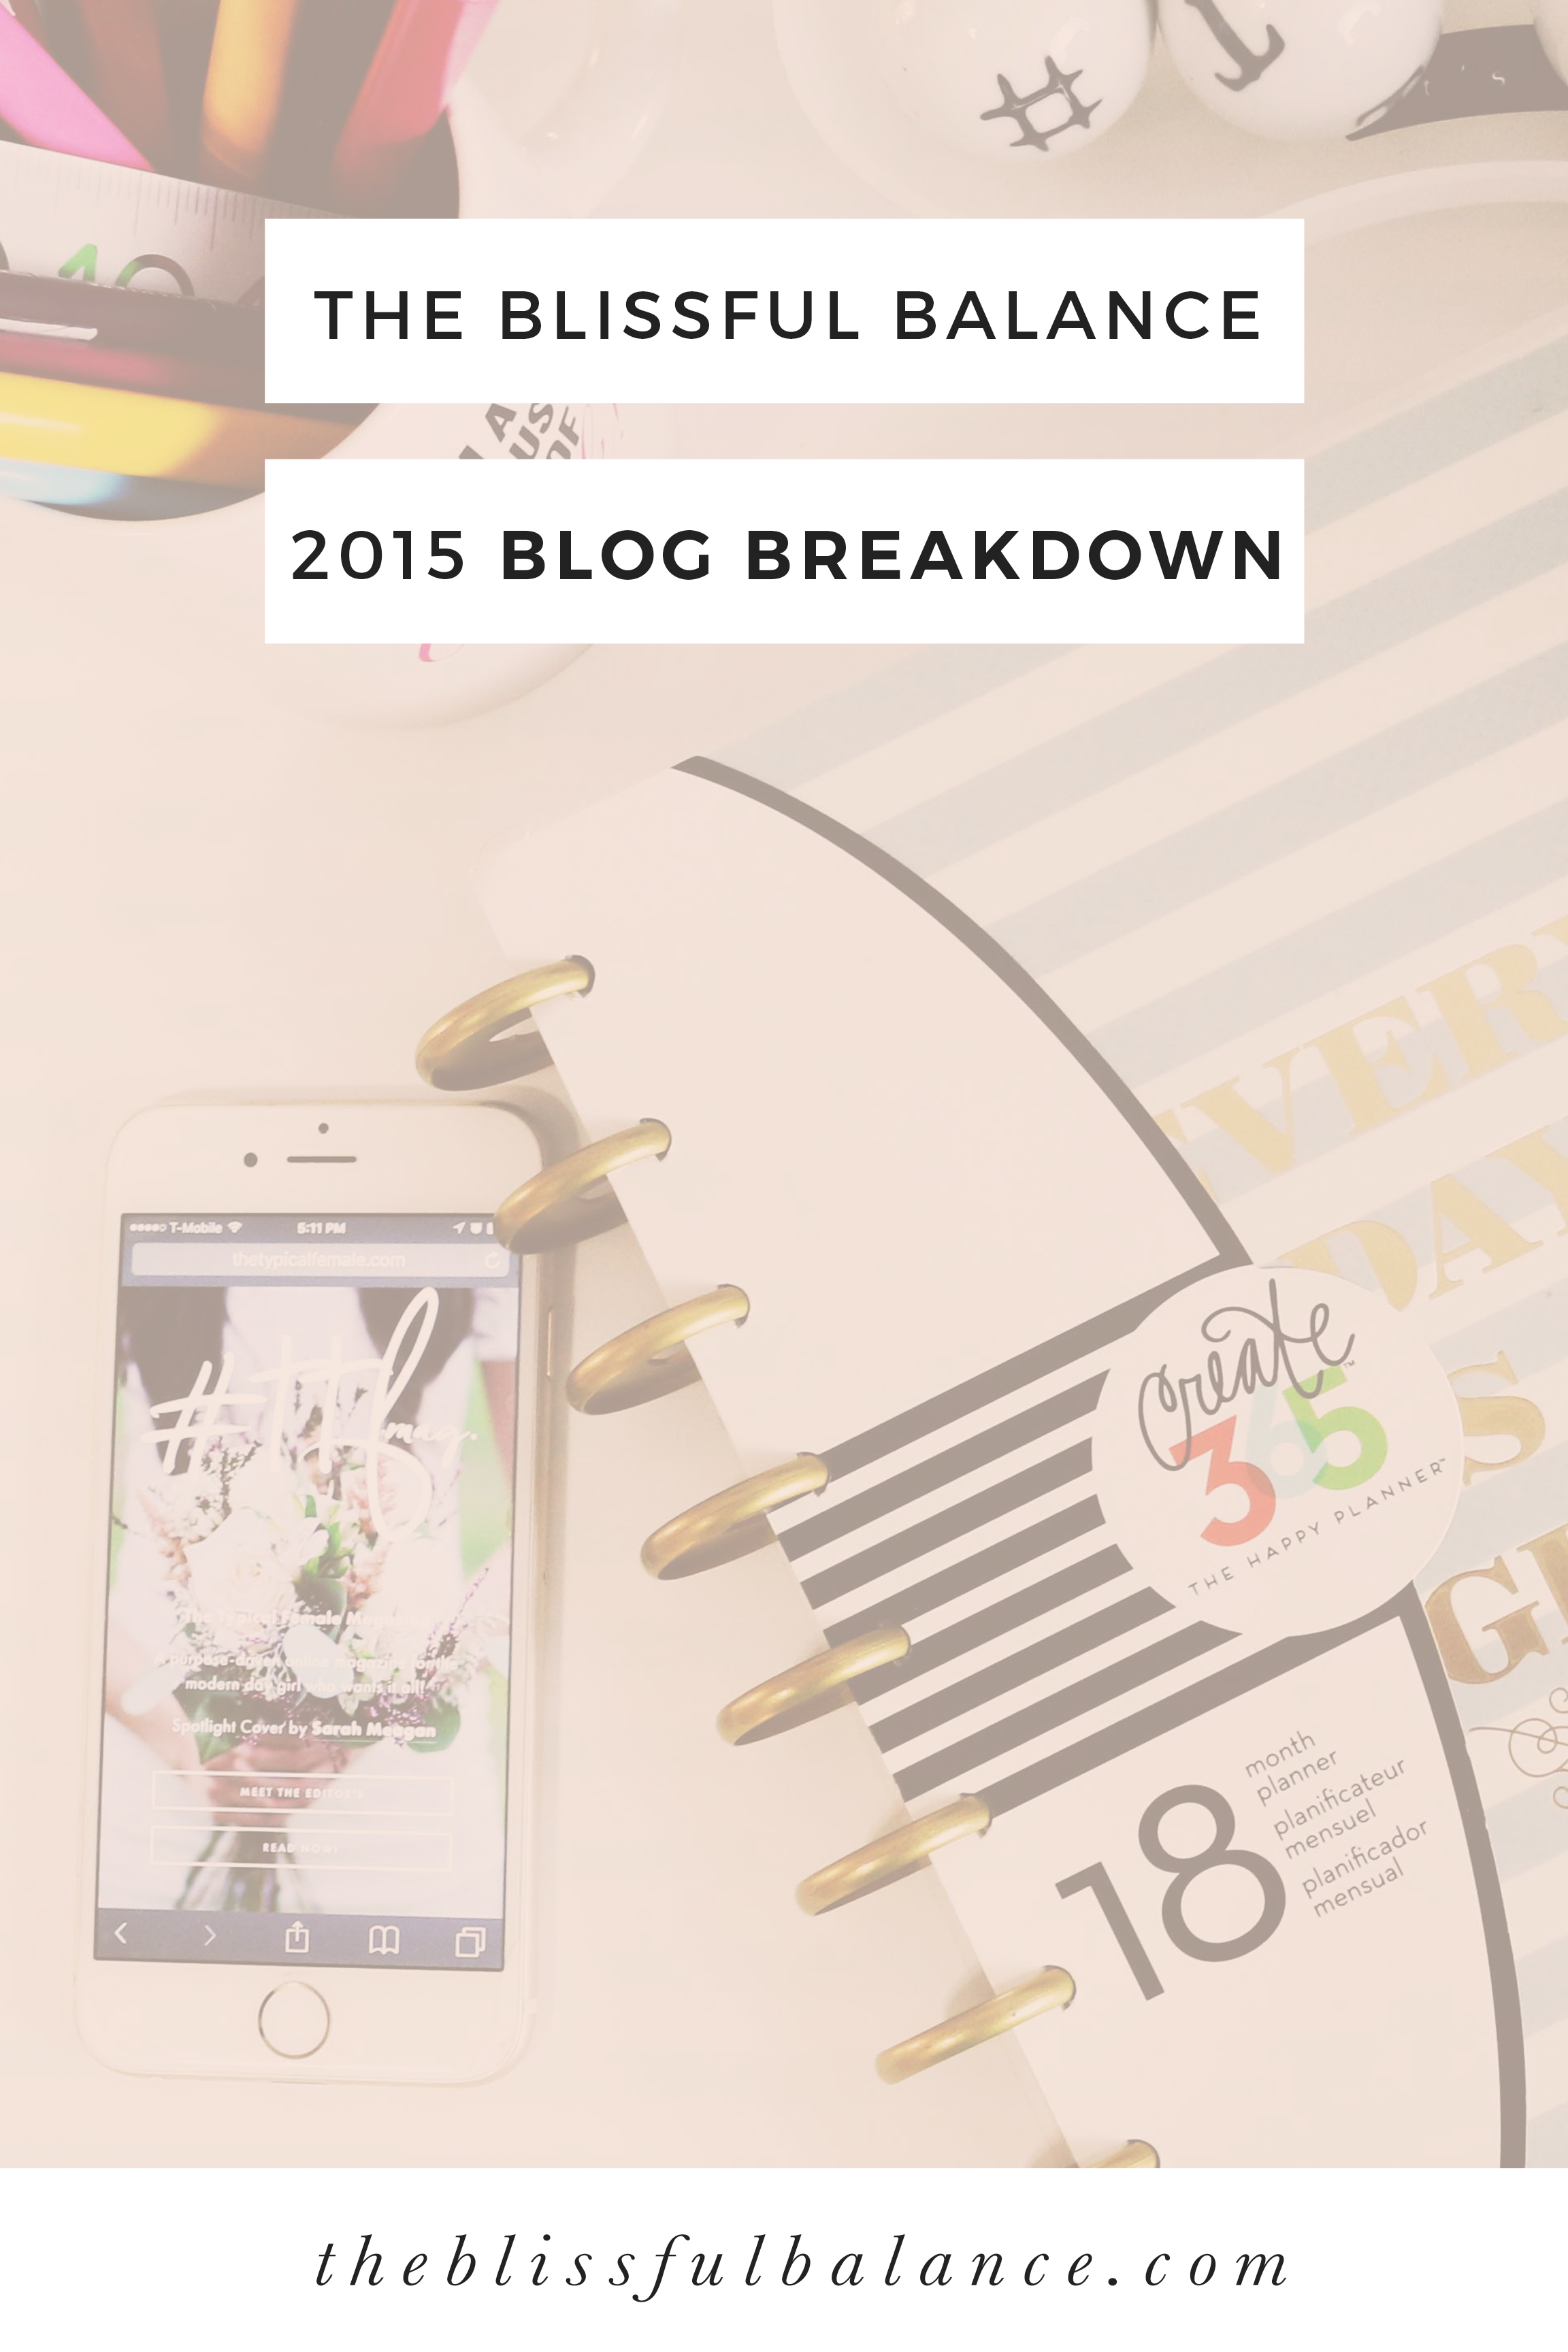 2015 The Blissful Balance Blog Breakdown, from blog traffic growth to top recipes to lifestyle posts.